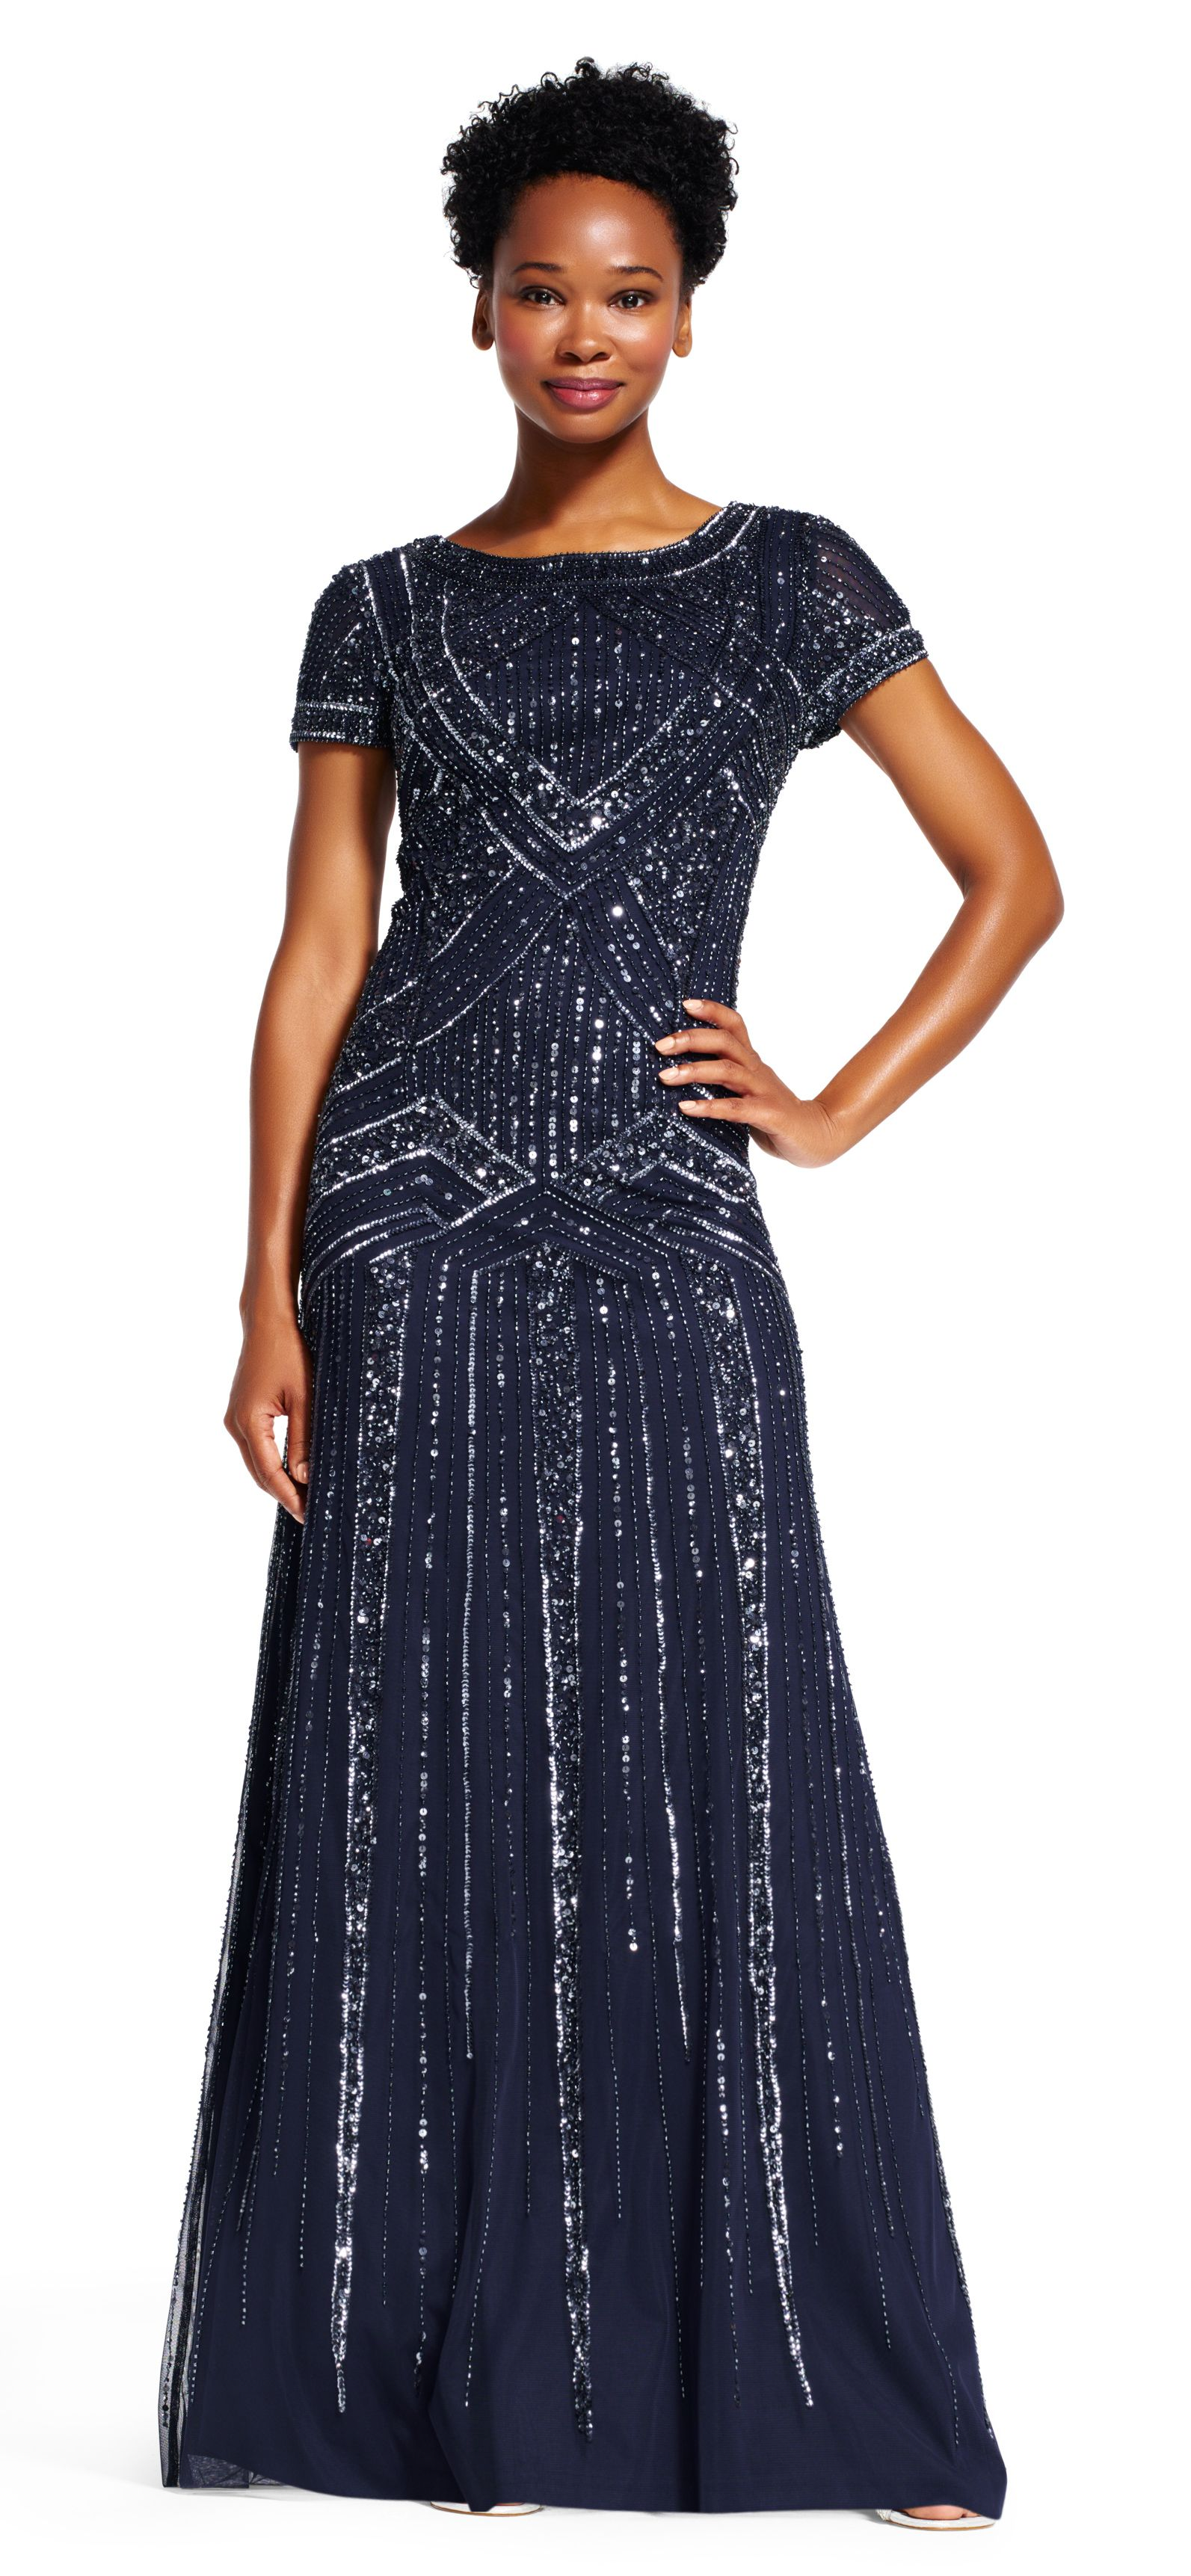 Sparkling details shine on this sophisticated evening gown this